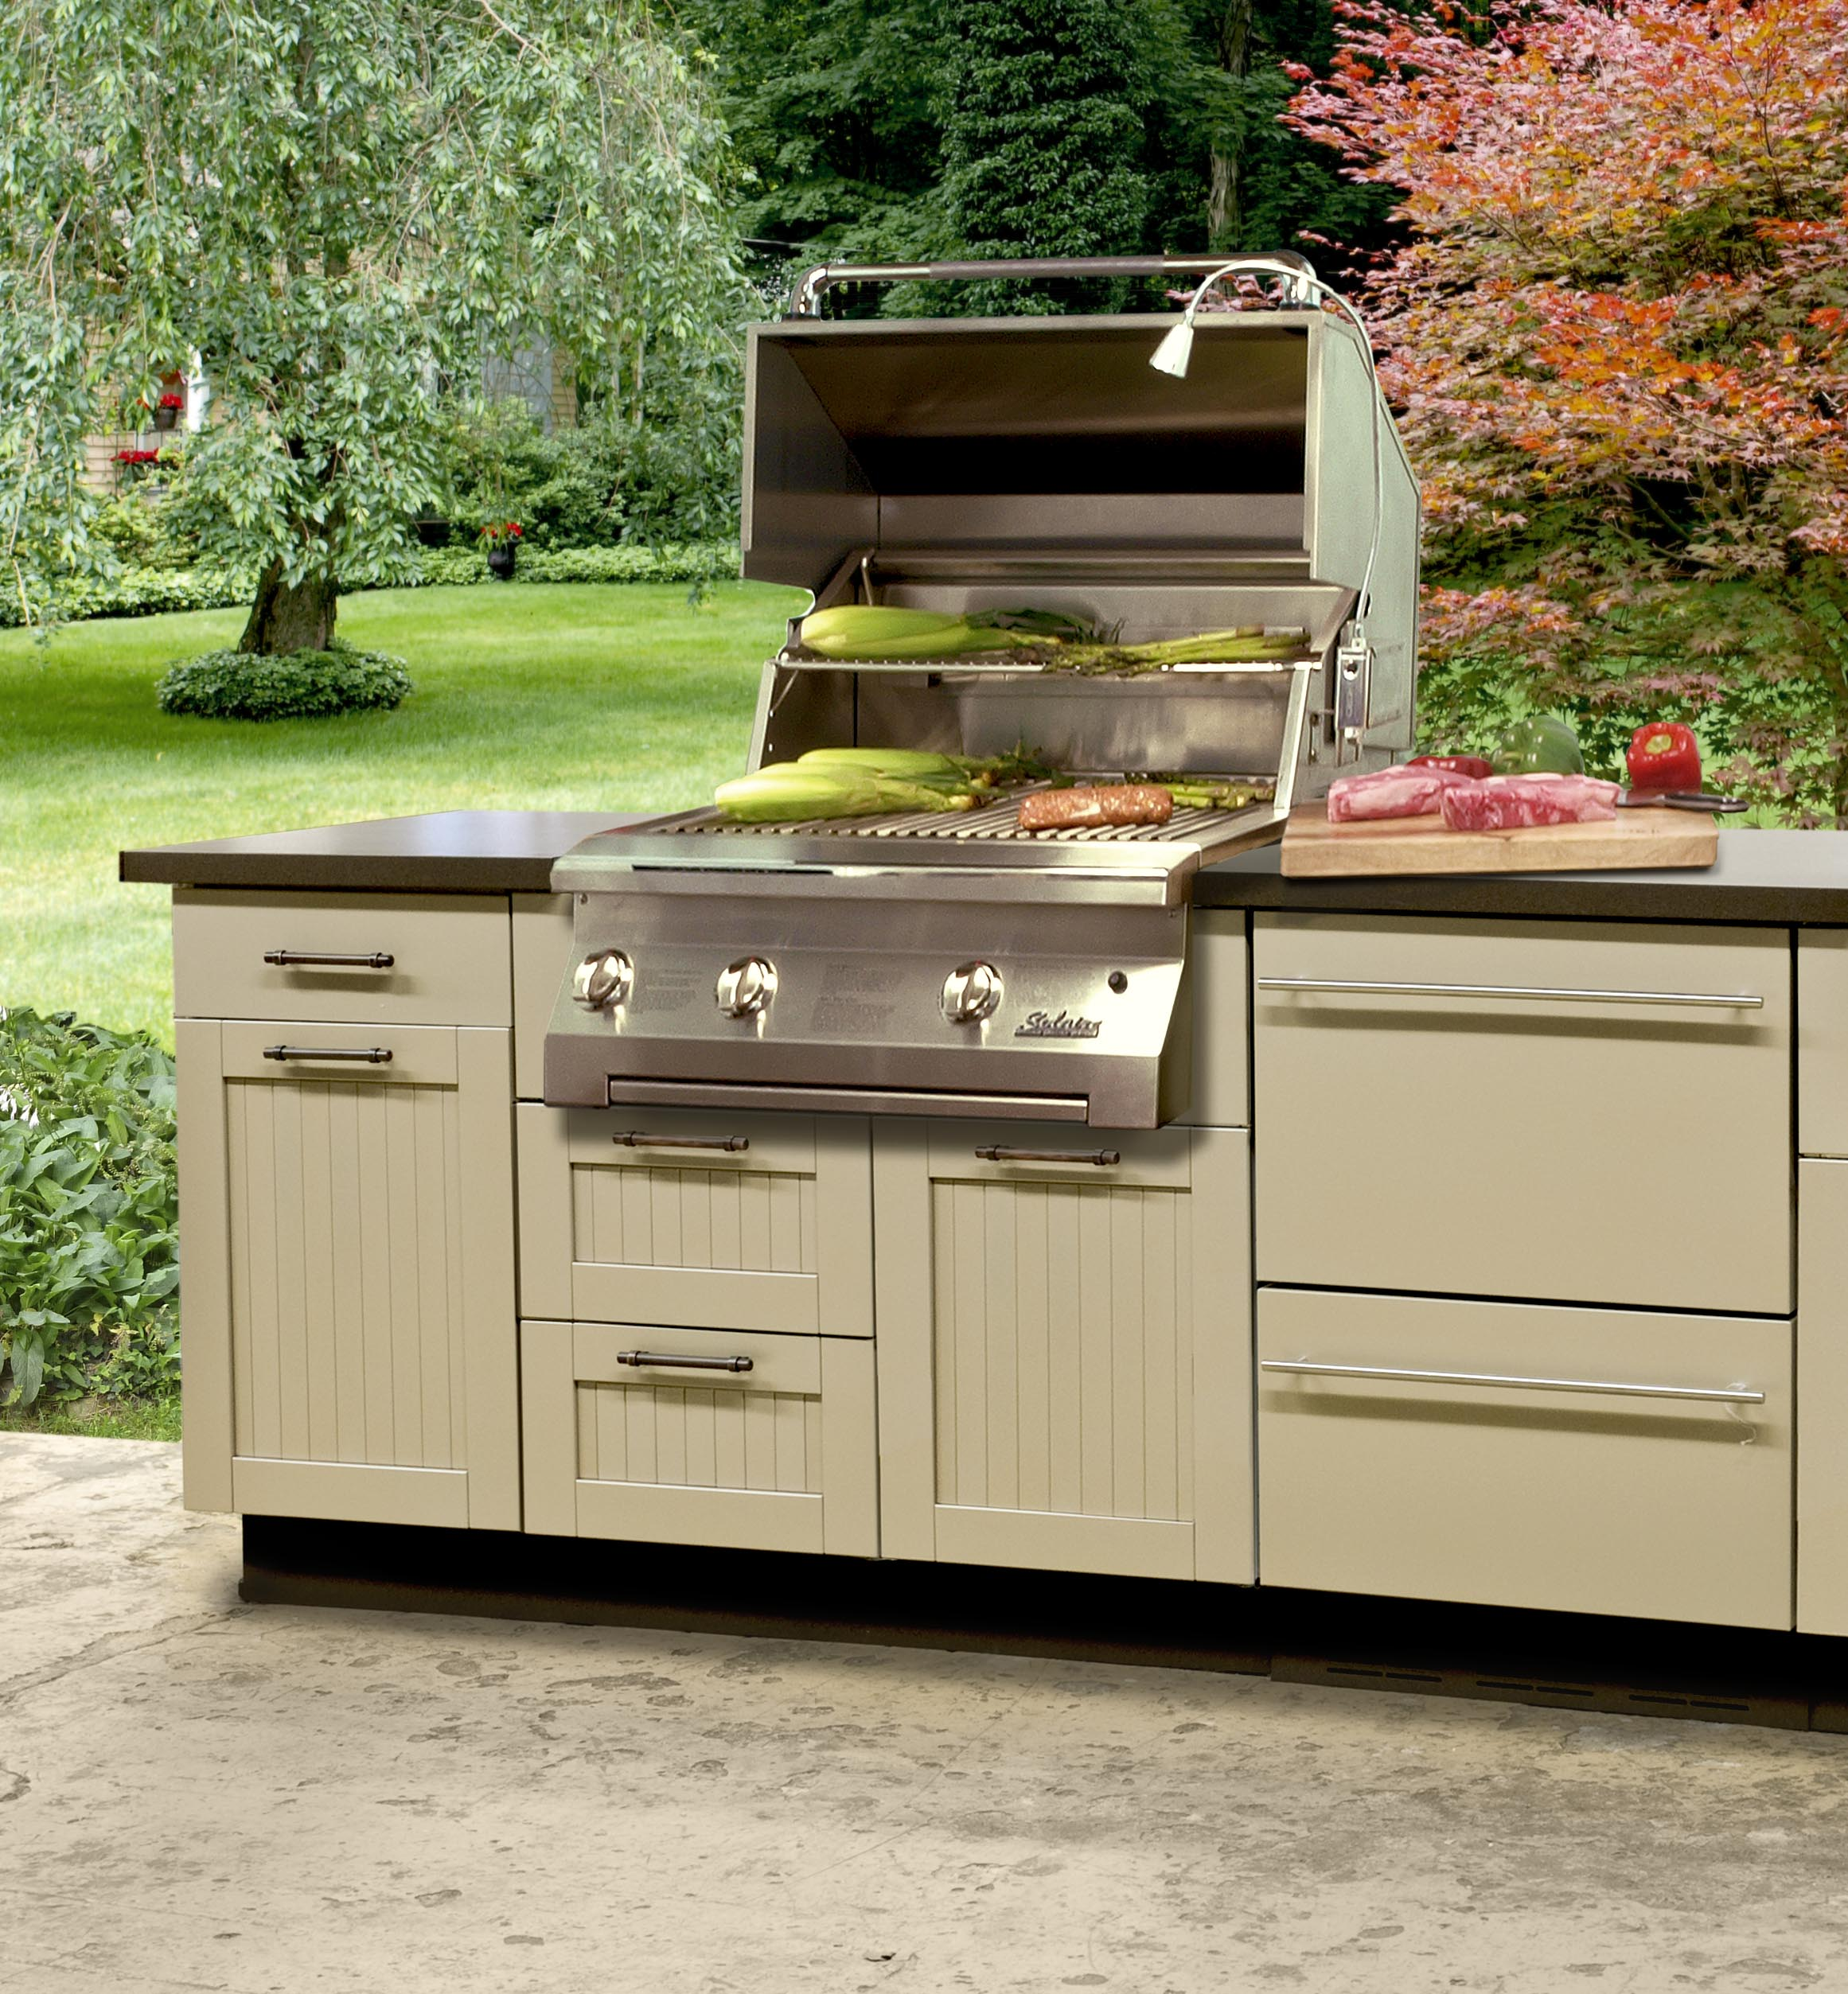 Outdoor Kitchen Wood Countertops: Best Suited To Offer You Top Notch